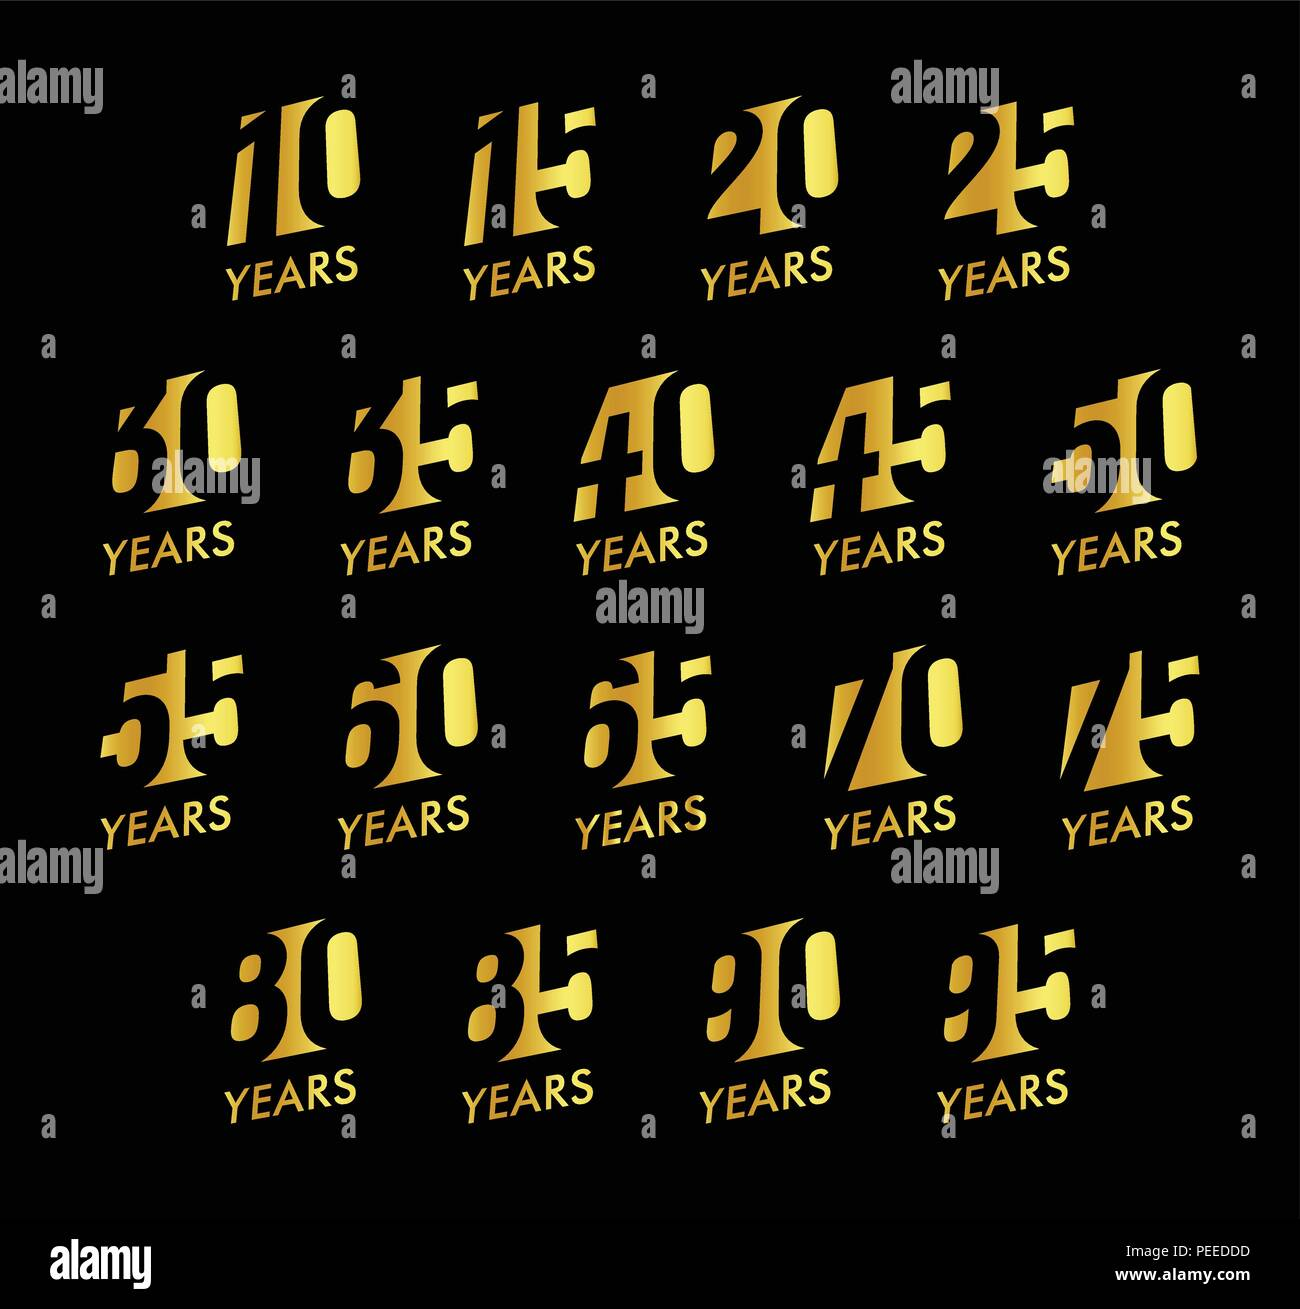 Anniversary vector numbers set. Birthday celebration logo collection. Golden years signs on black background. Jubilee design illustration. - Stock Vector